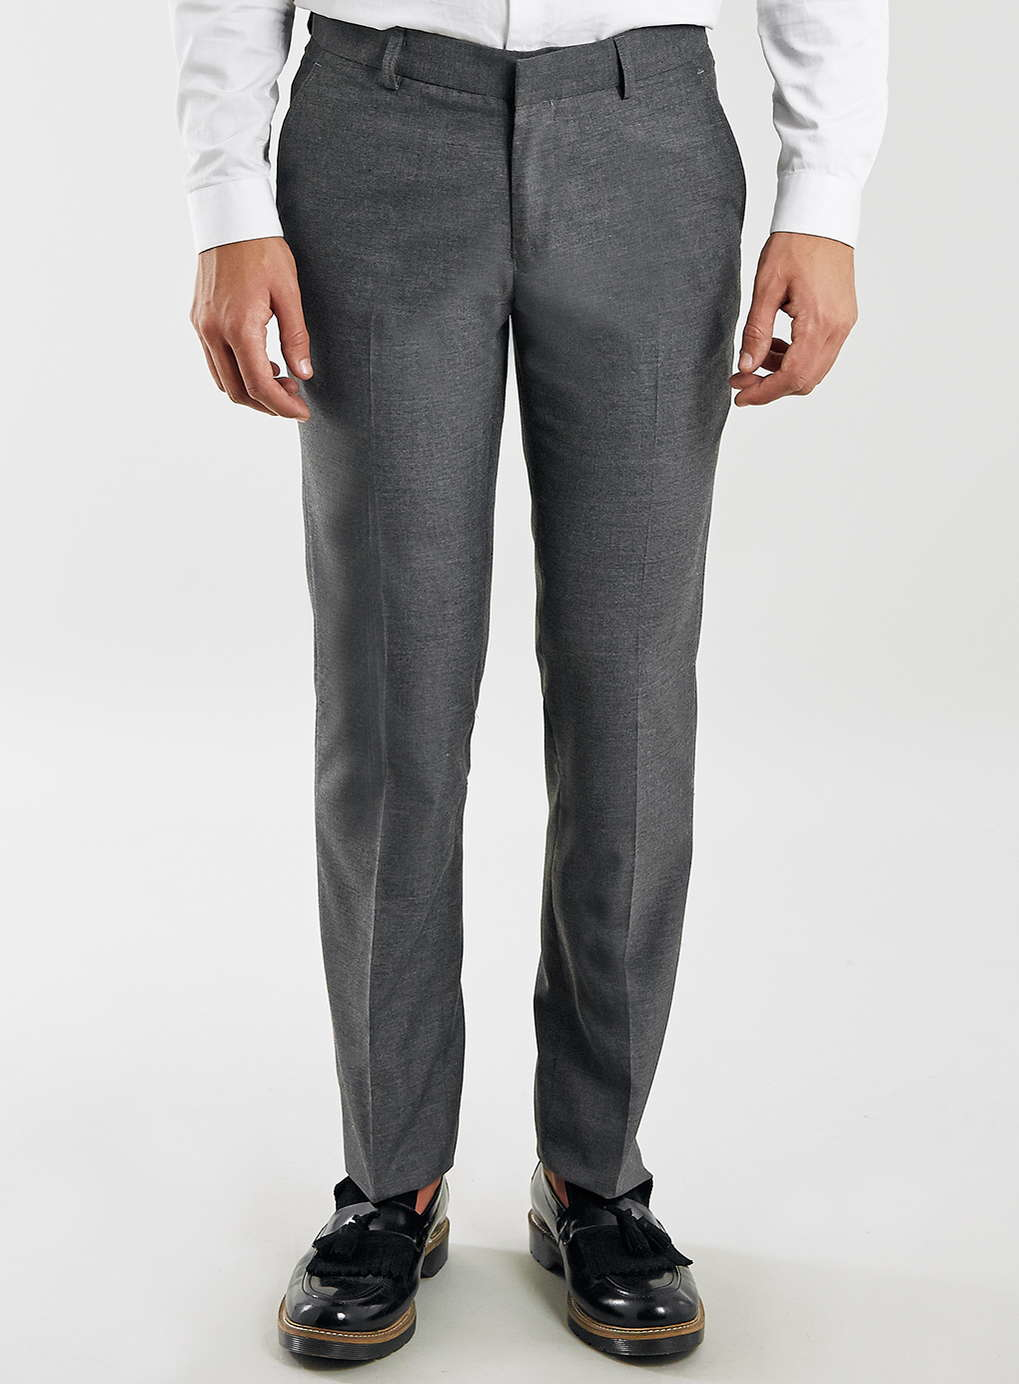 Find great deals on eBay for mens smart trousers. Shop with confidence.